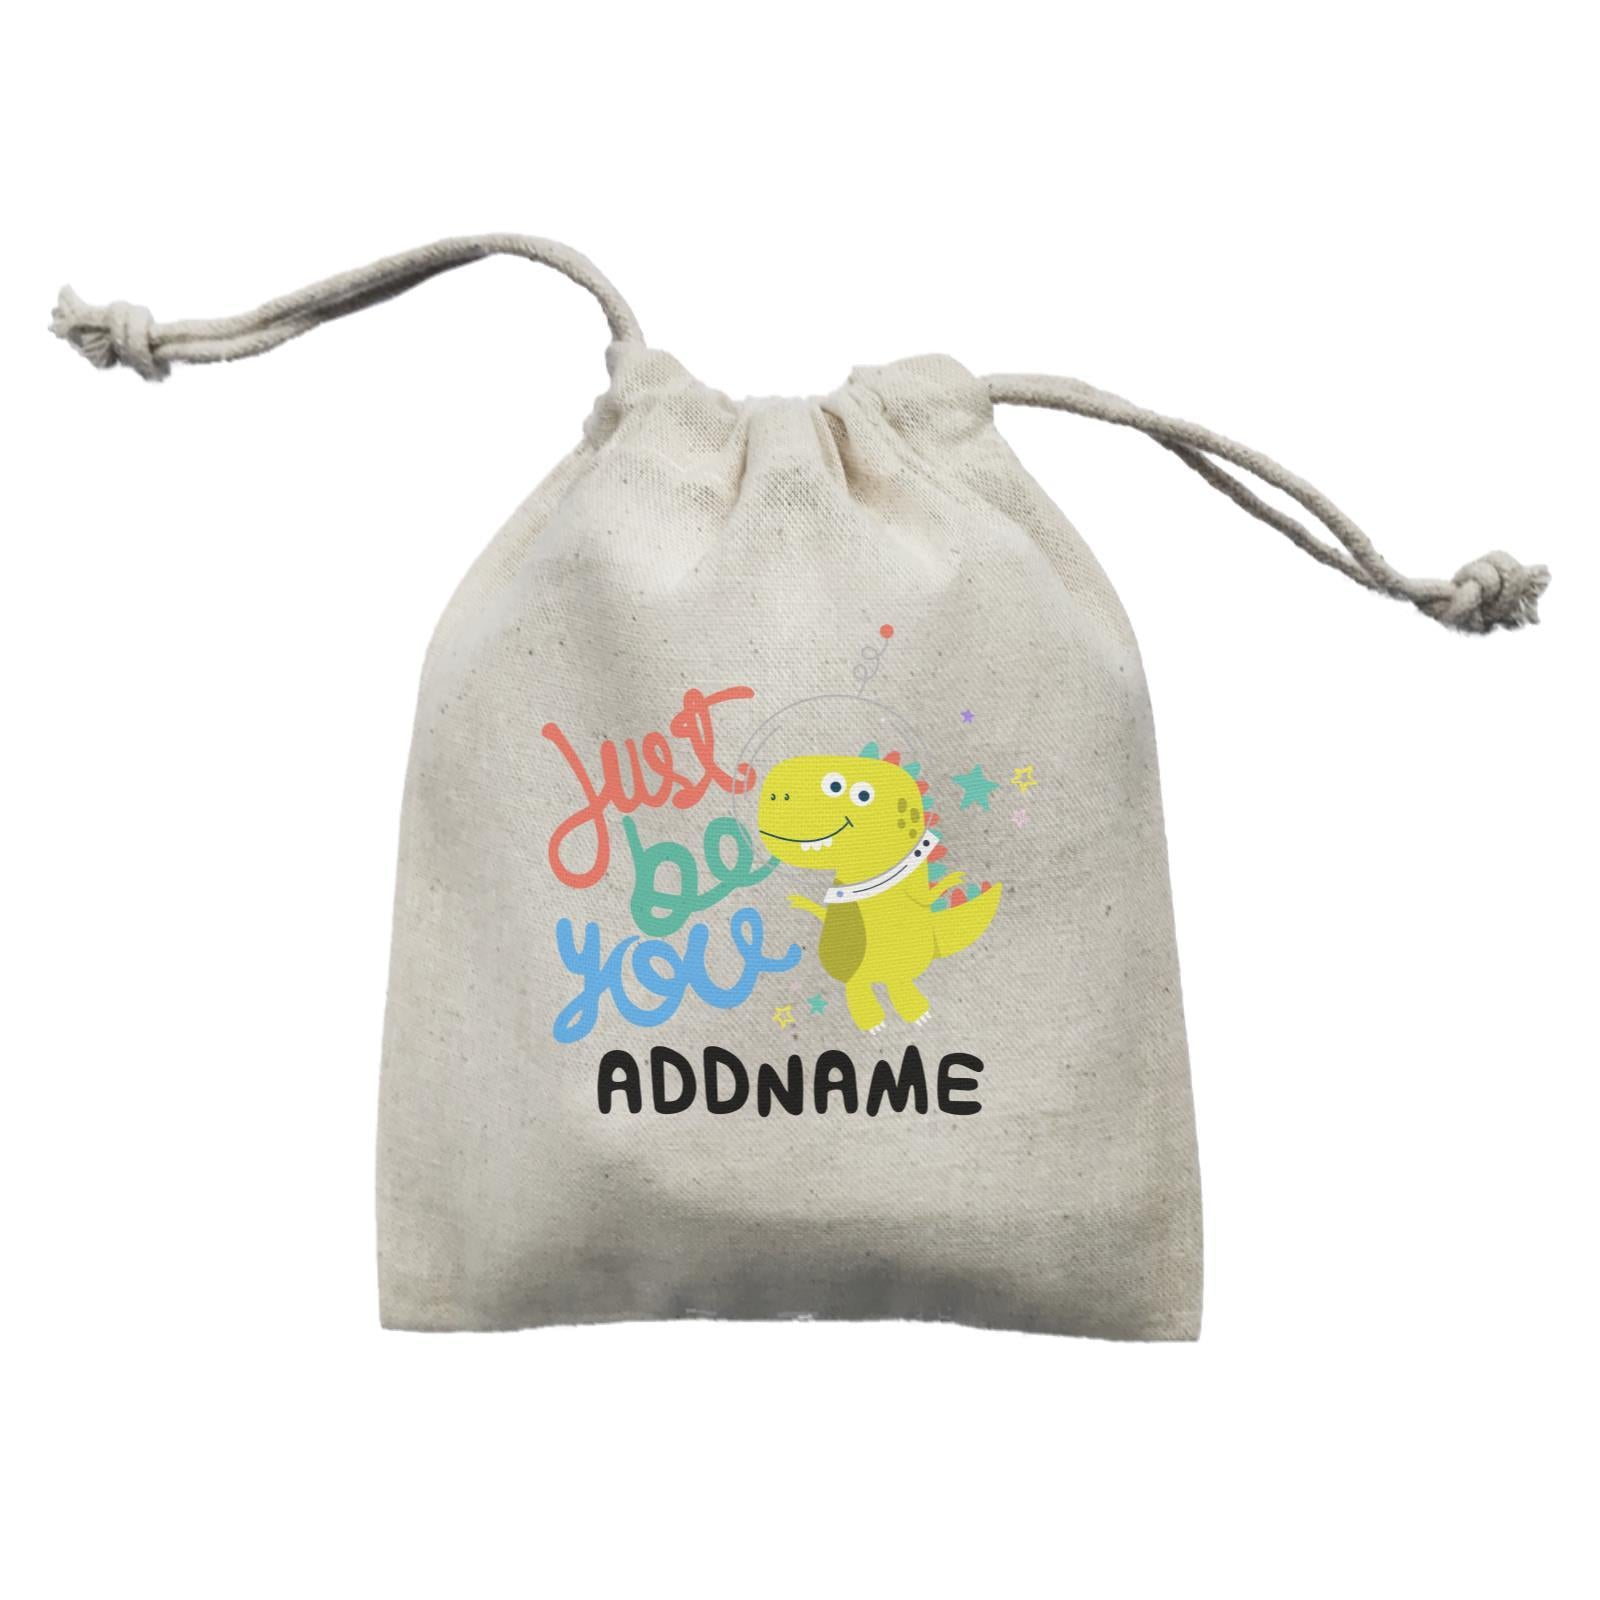 Children's Day Gift Series Just Be You Space Dinosaur Addname  Mini Pouch